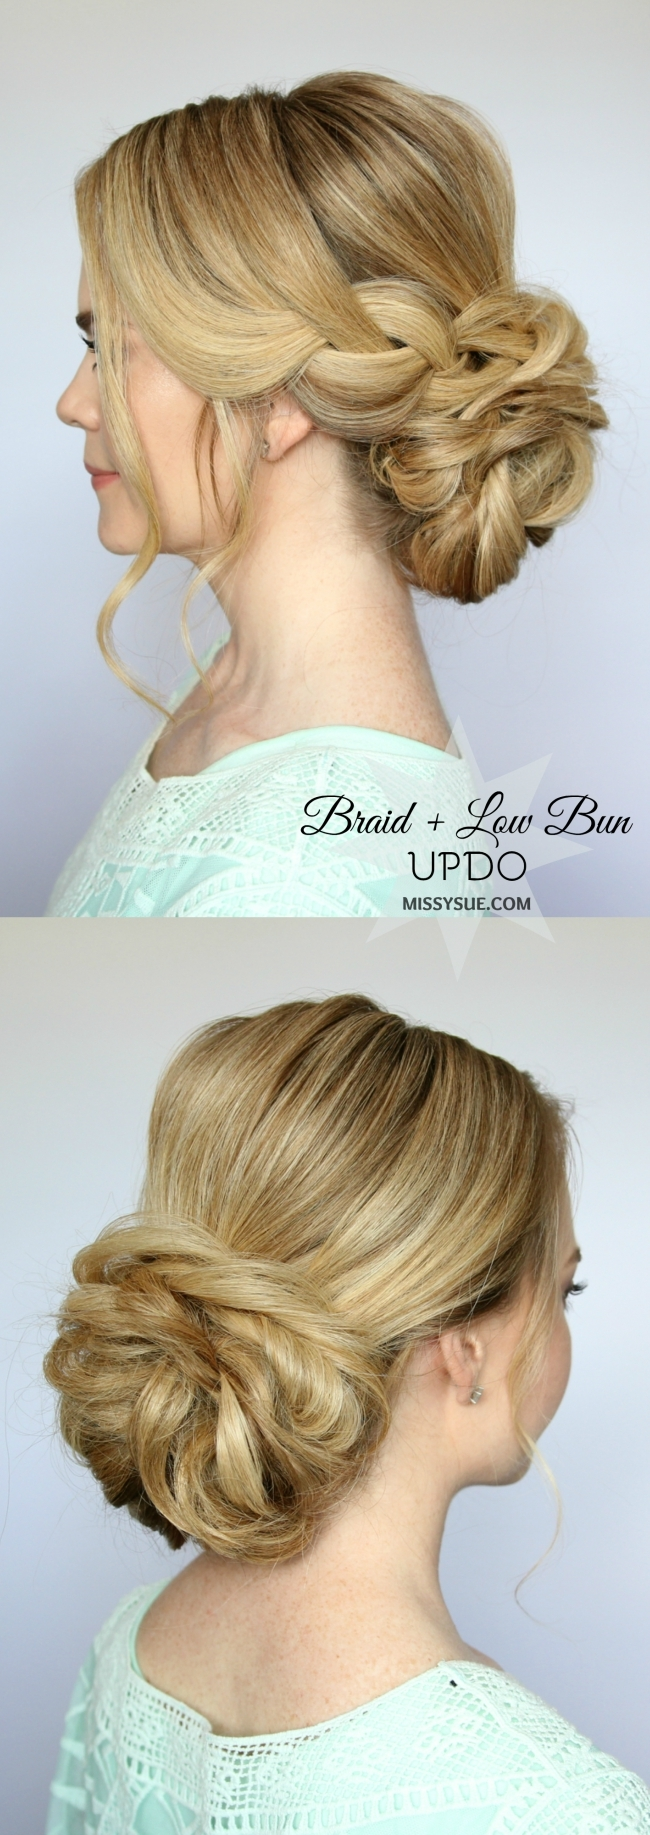 braid-low-bun-hair-tutorial